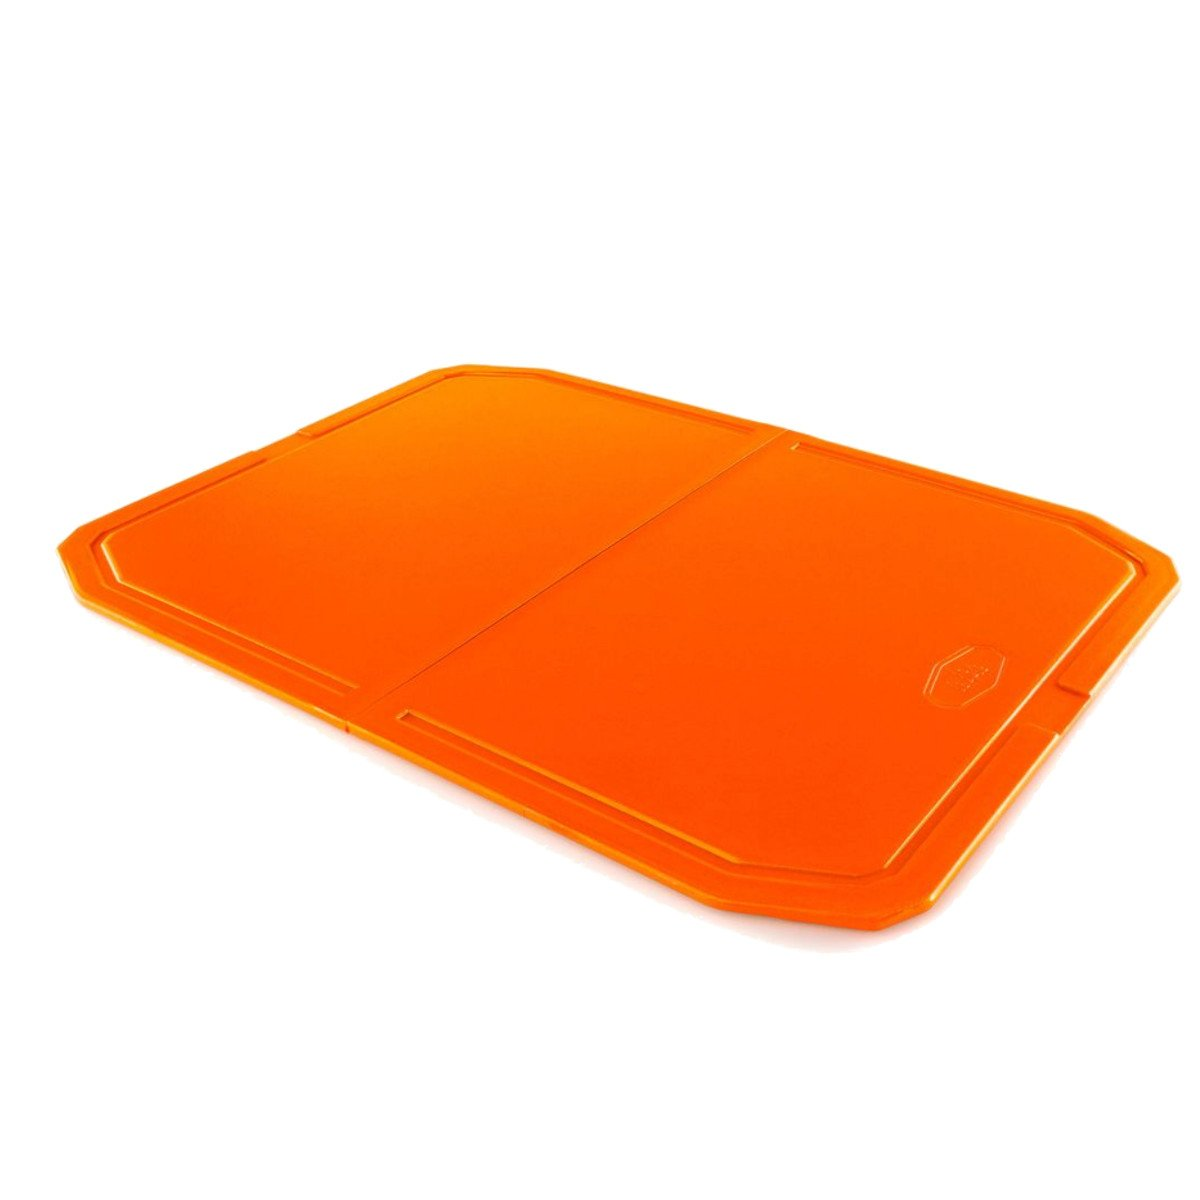 GSI Folding Cutting Board in Orange